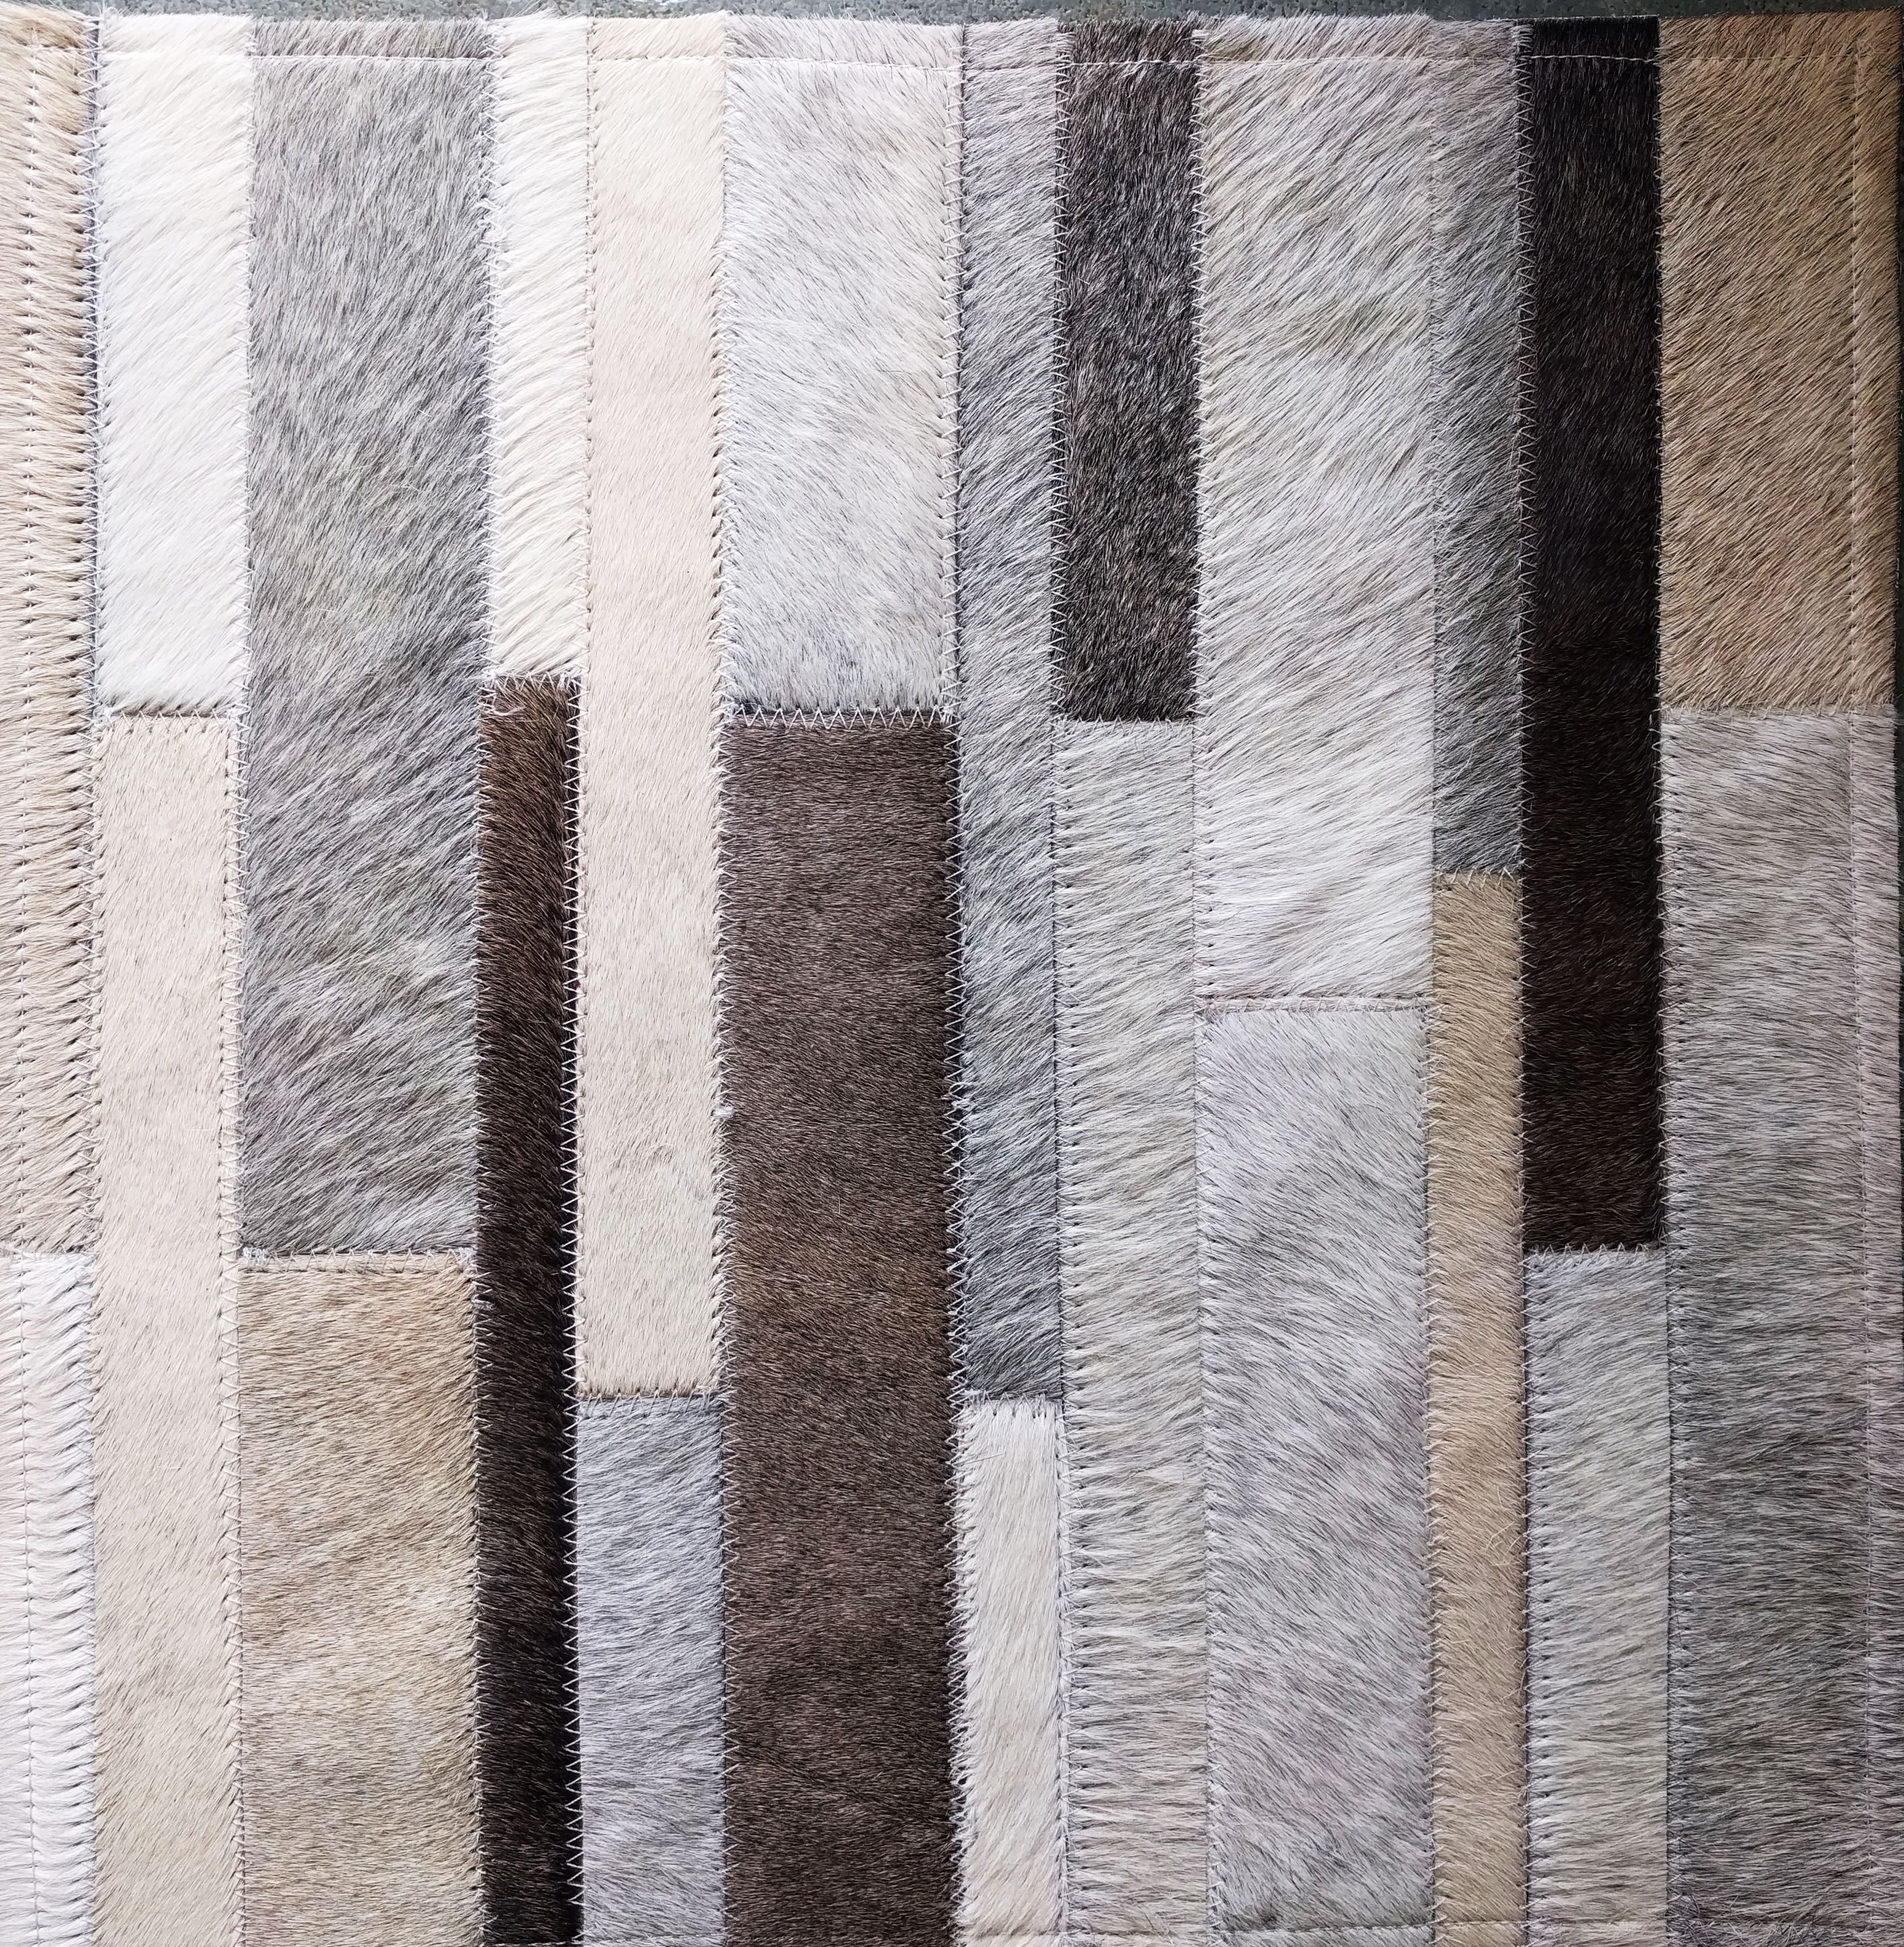 Stripes Of Love Taupe Beige Cream And Gray Patchwork Cowhide Rug In Stripes Patchwork Cowhide Rug Patchwork Cowhide Cow Hide Rug